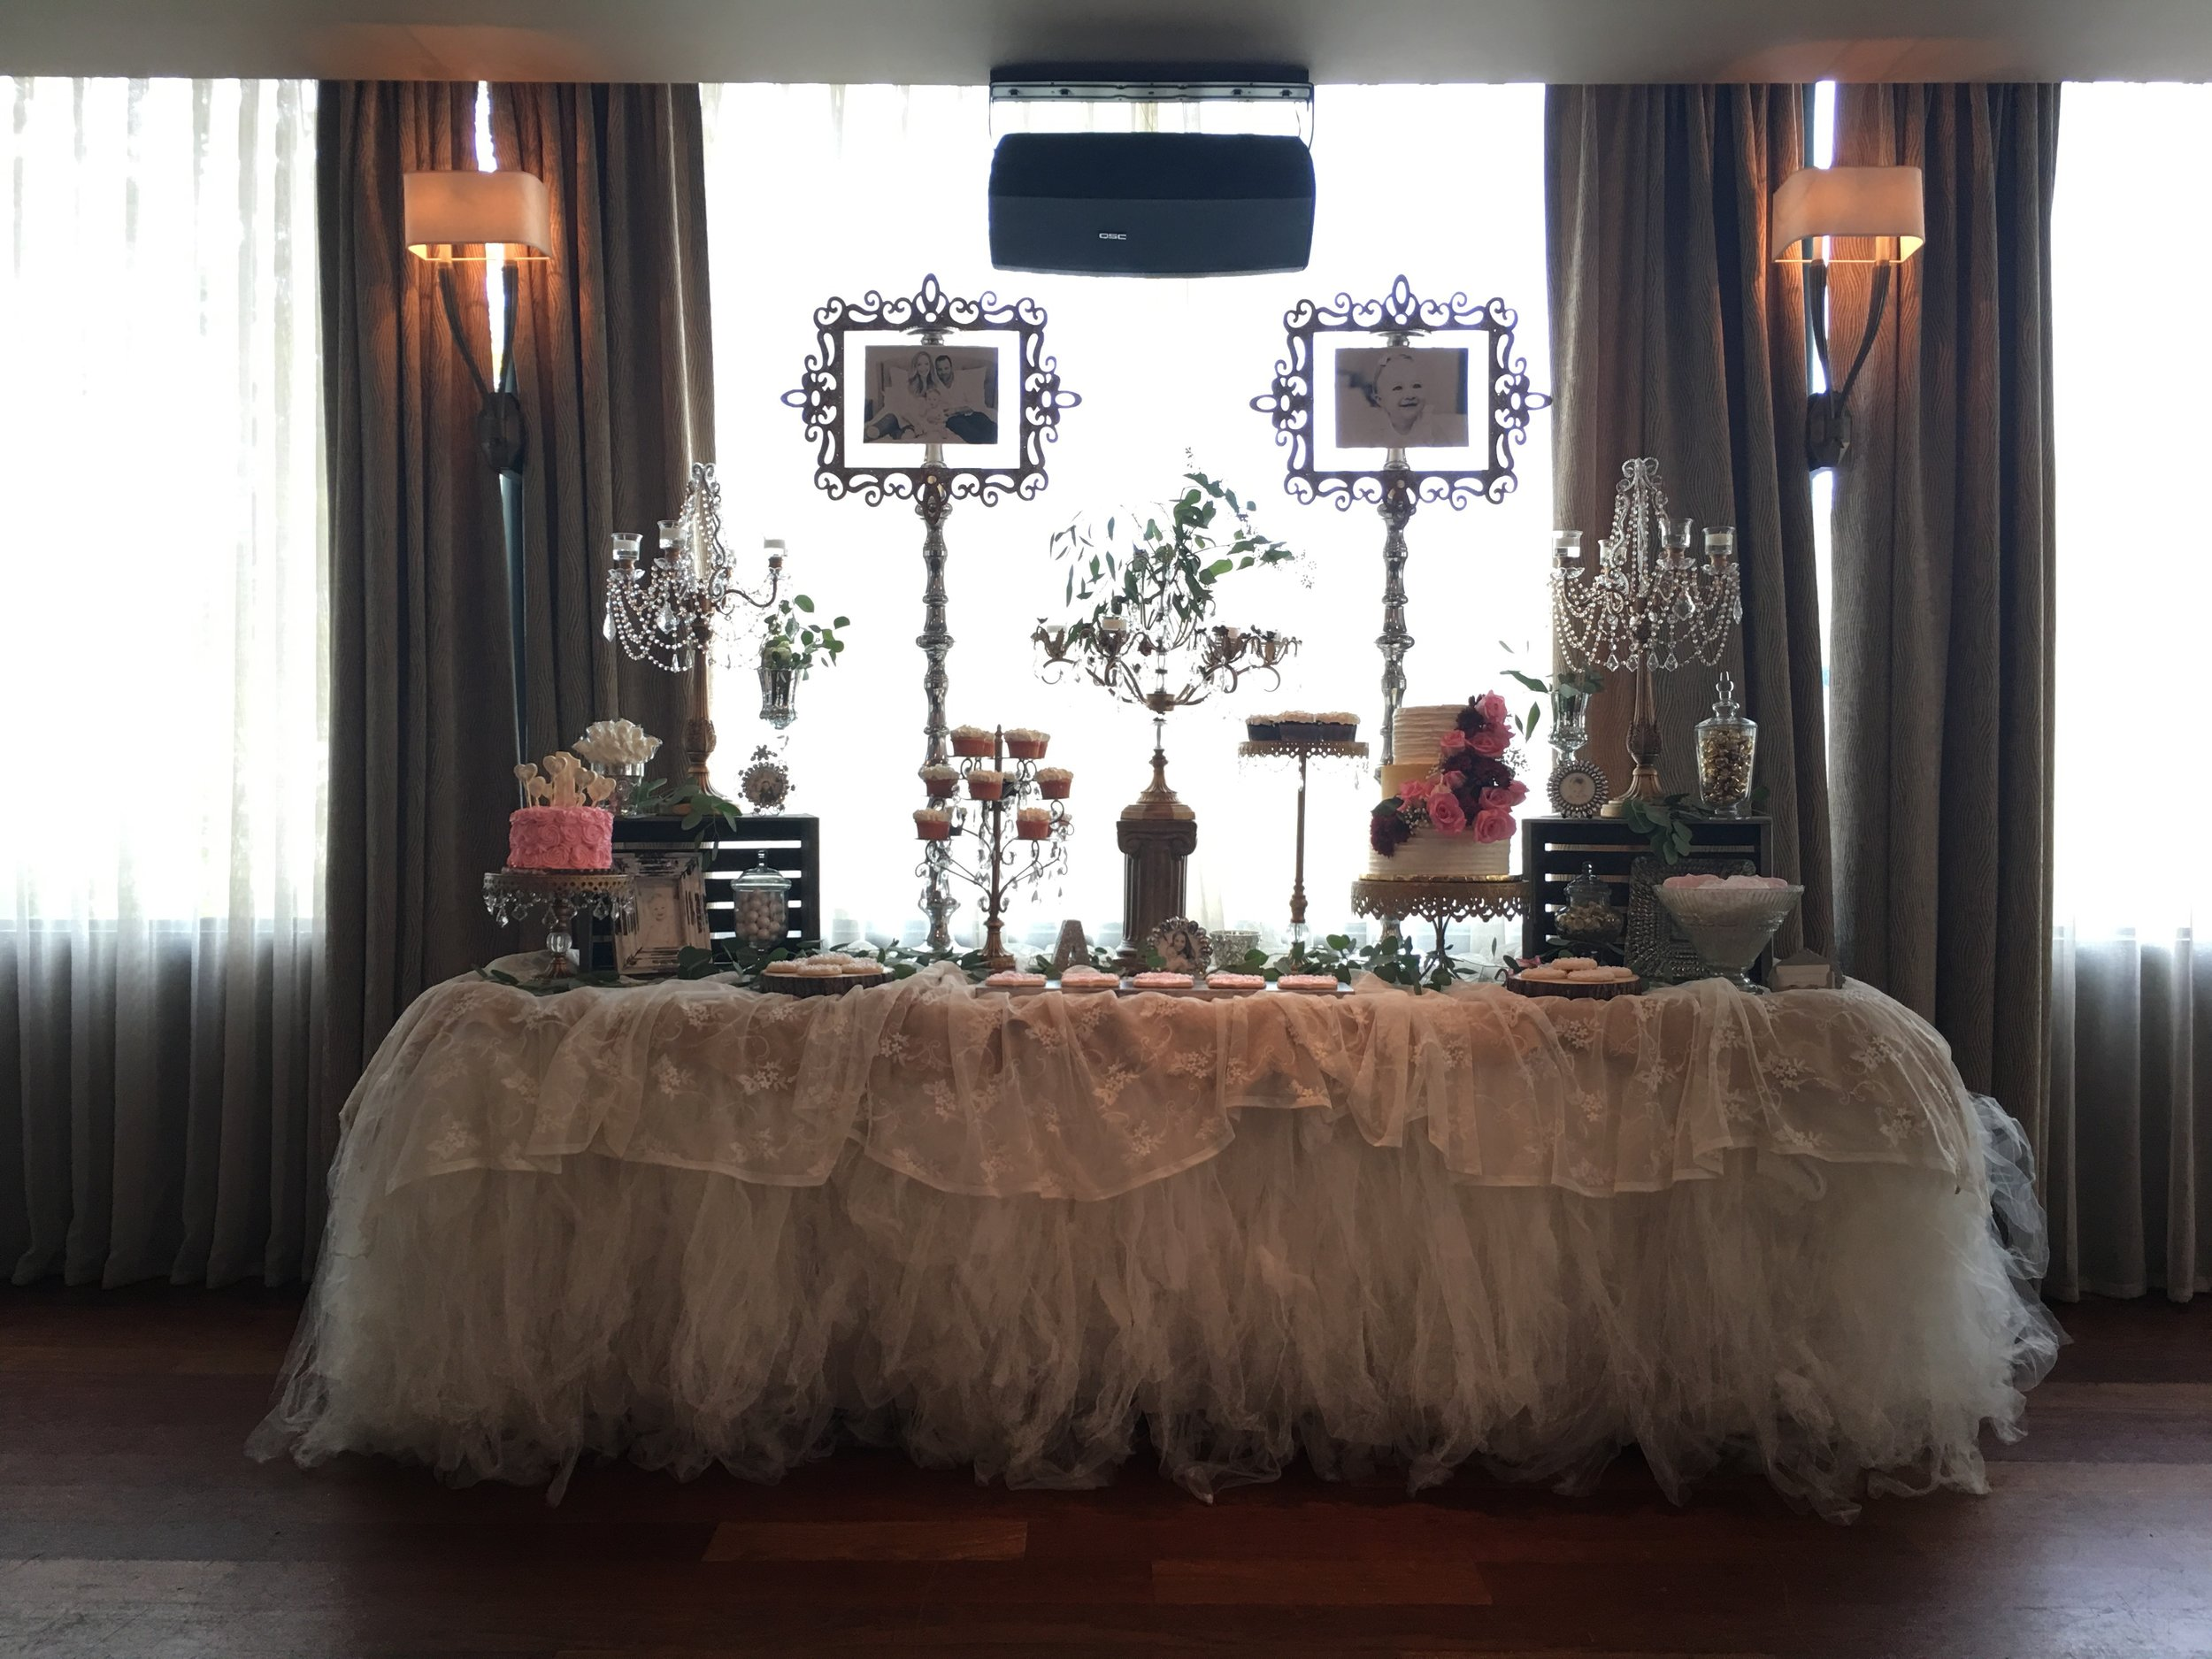 beautiful-and-blessed-events-hendricks-tavern-first-birthday-ava-rose-007